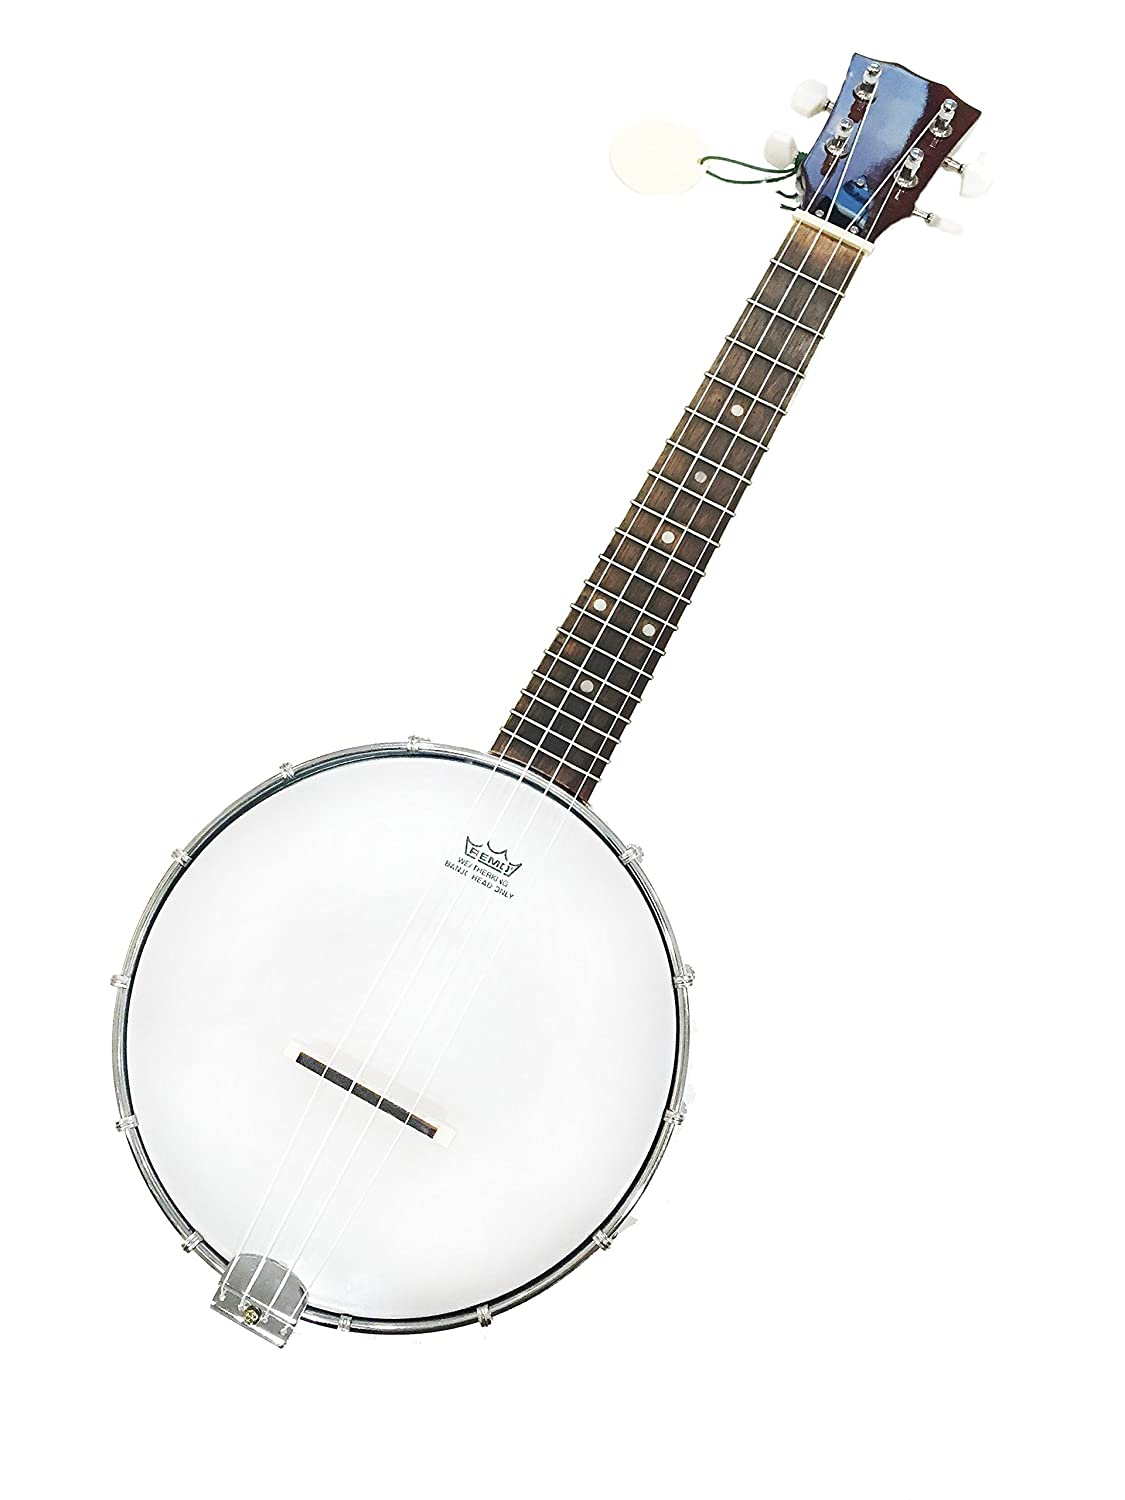 Top 7 Best Banjo Toys for Kids Reviews in 2020 2